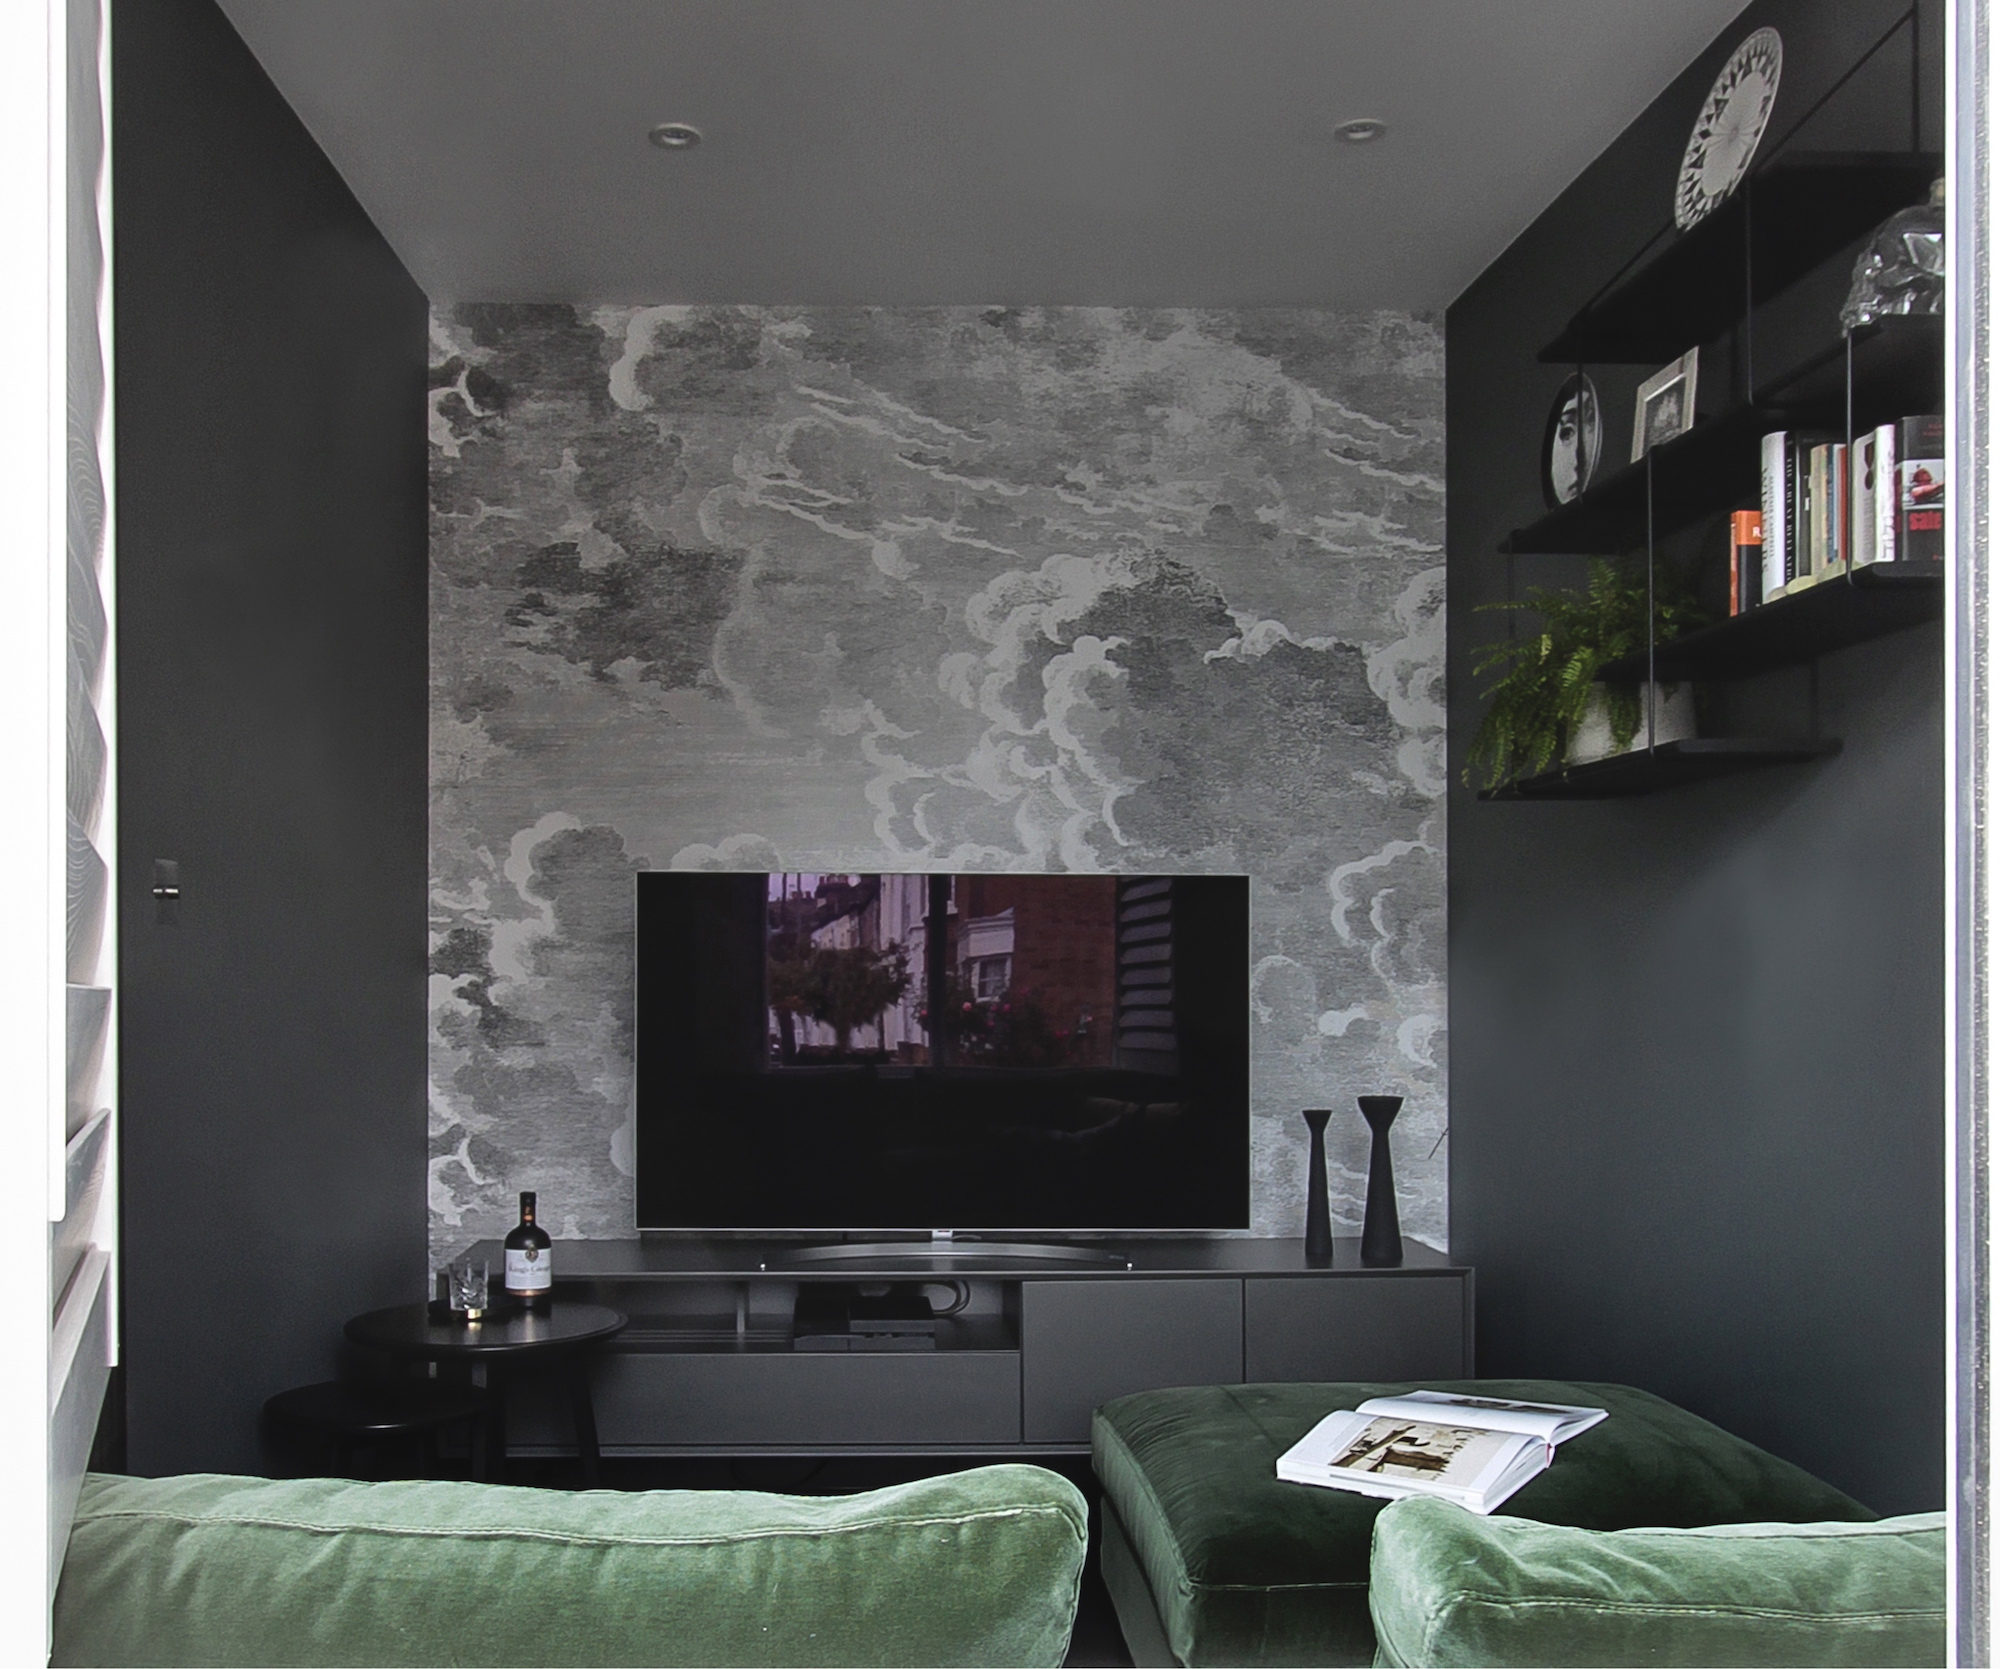 His and Hers Haven, Games Room